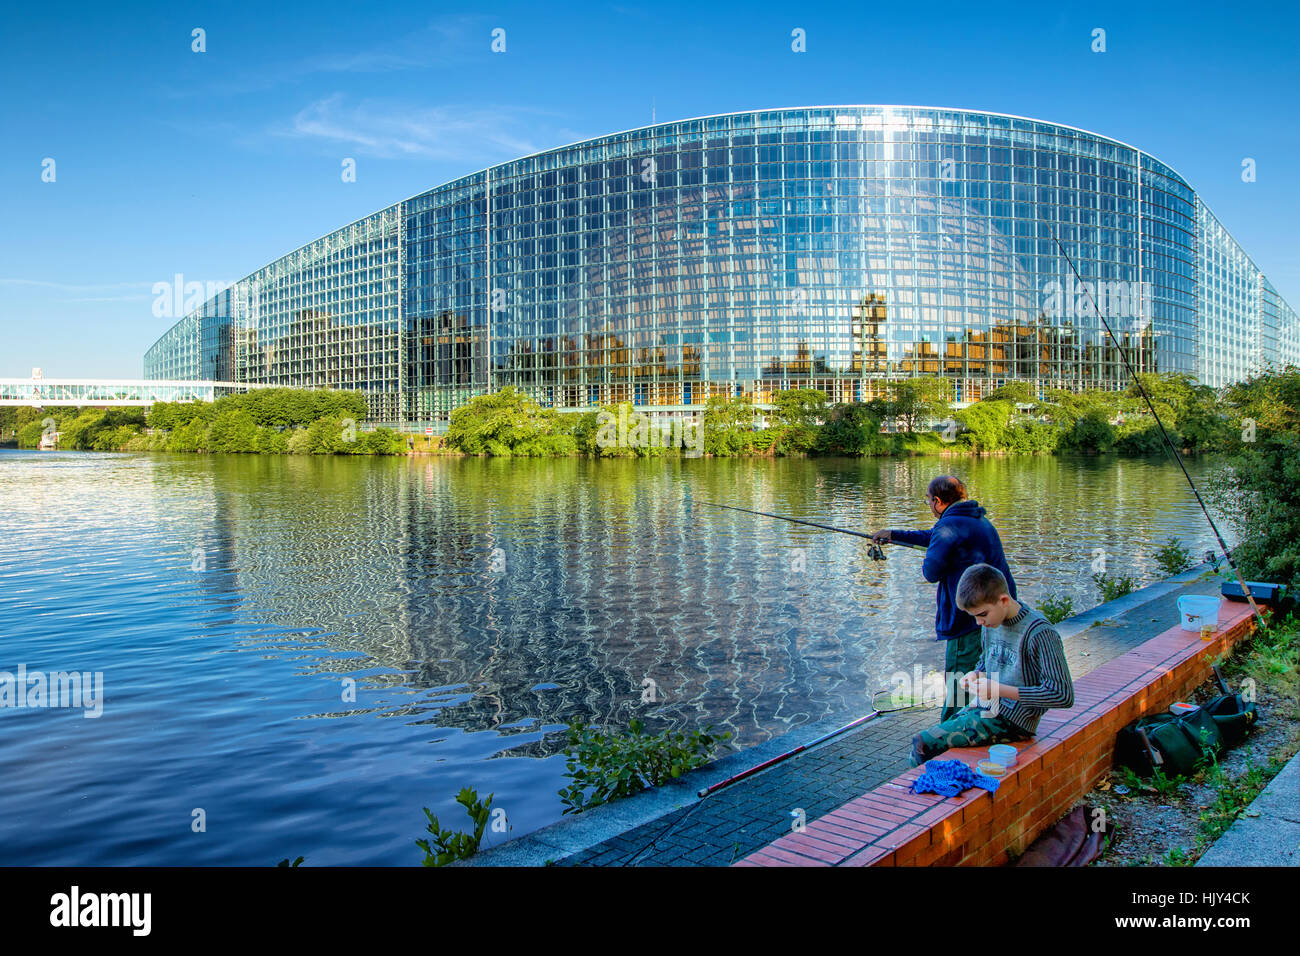 European Parliament building in Strasbourg - Stock Image